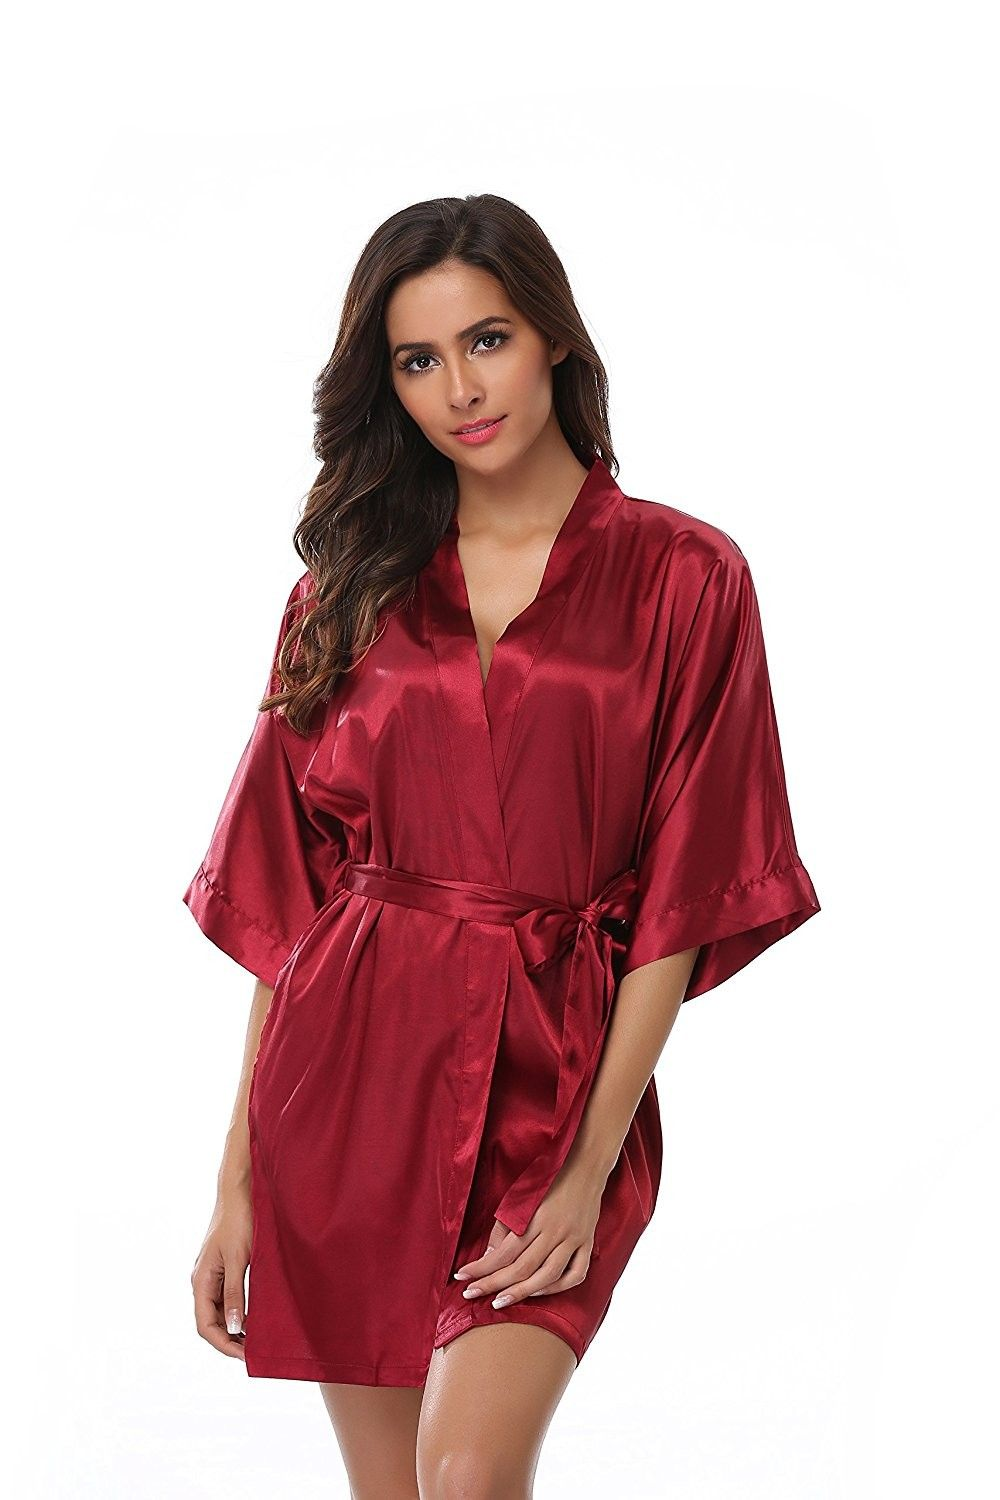 6a0a5510f402 VogueBridal Women s Solid Color Short Kimono Robe - Wine Red ...